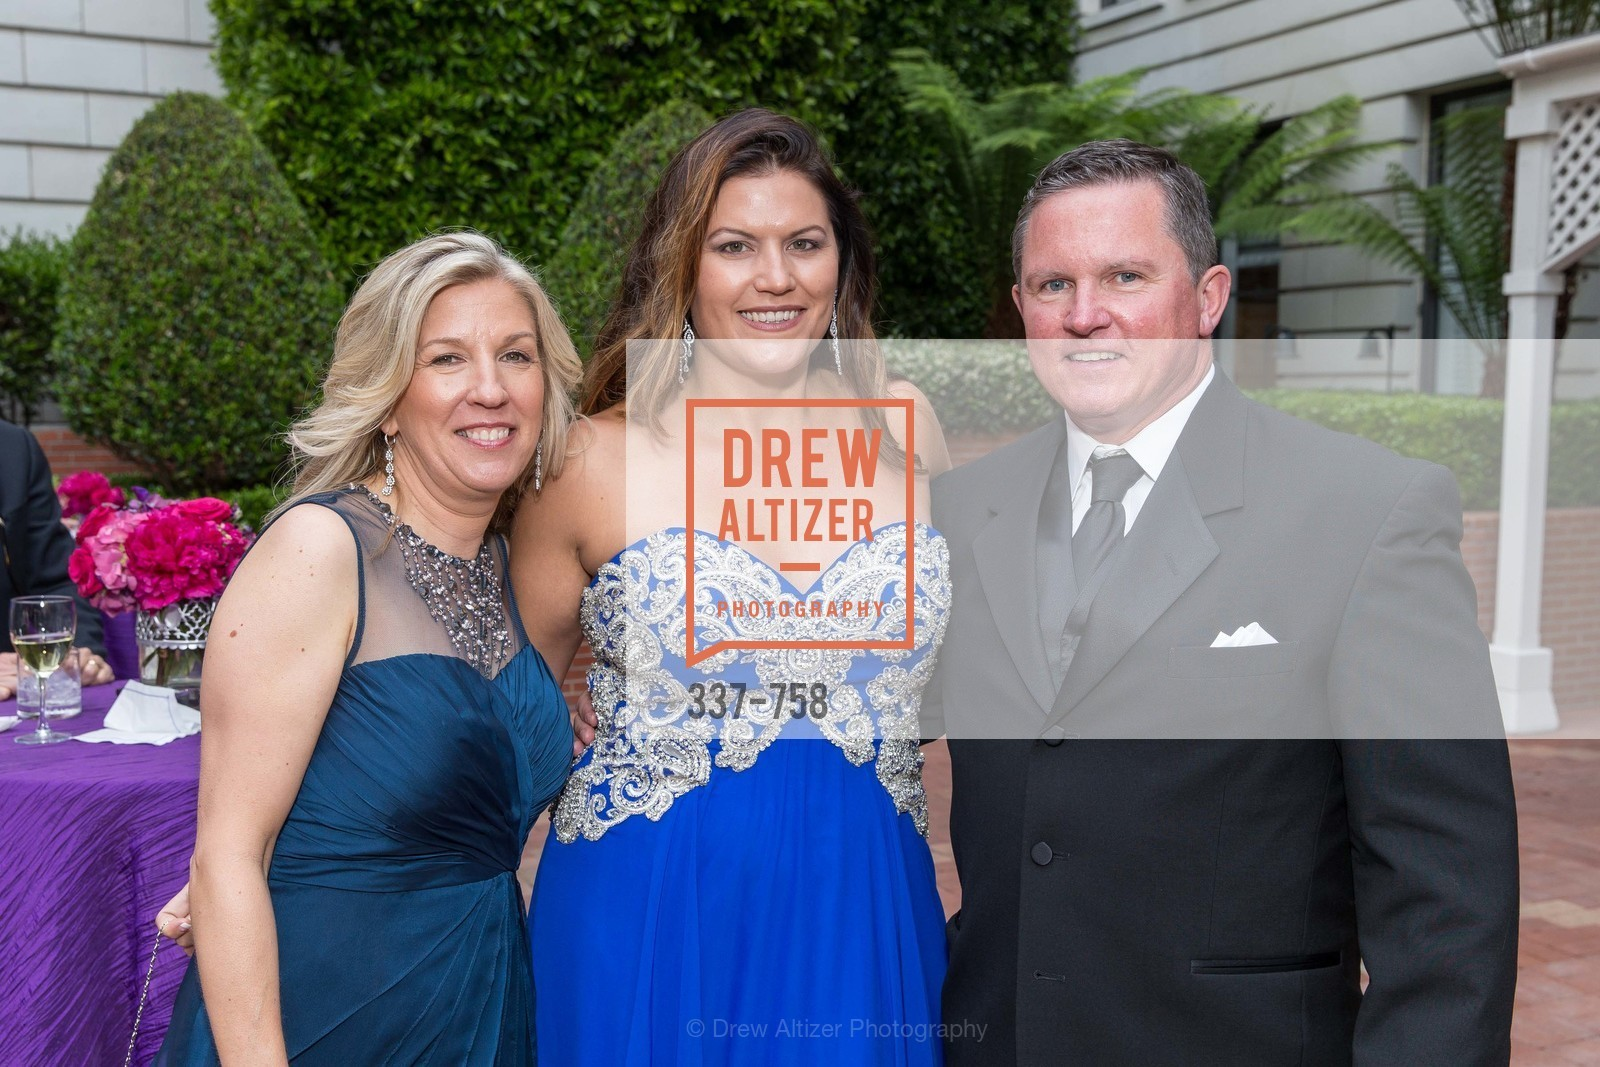 Linda Molnar, Heidi Peterson, Sean McGinn, JUVENILE DIABETES RESEARCH FOUNDATION  Hope Gala, US, May 30th, 2015,Drew Altizer, Drew Altizer Photography, full-service agency, private events, San Francisco photographer, photographer california